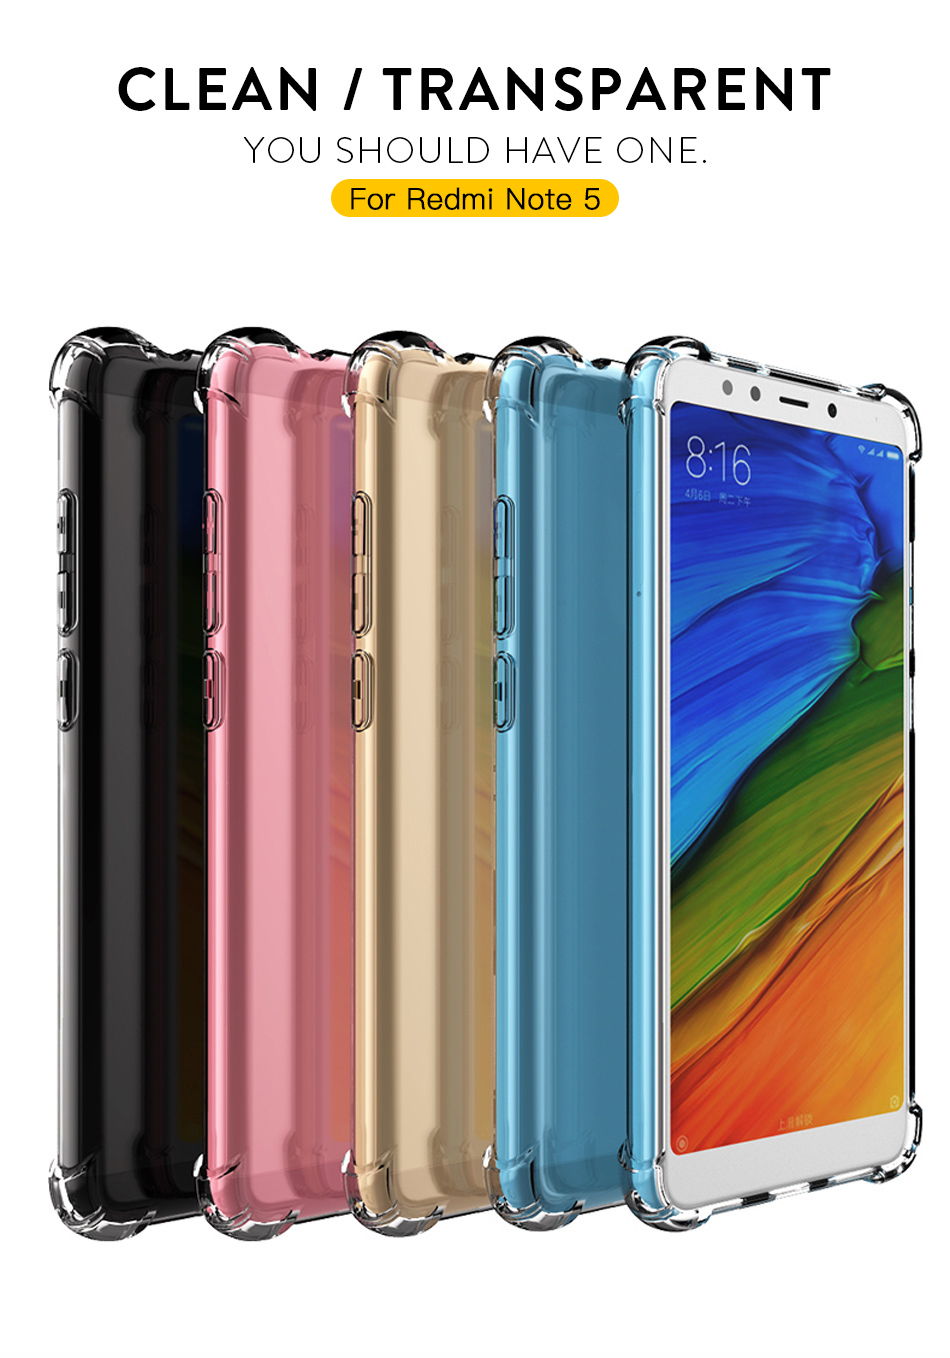 note 5 phone cases 1